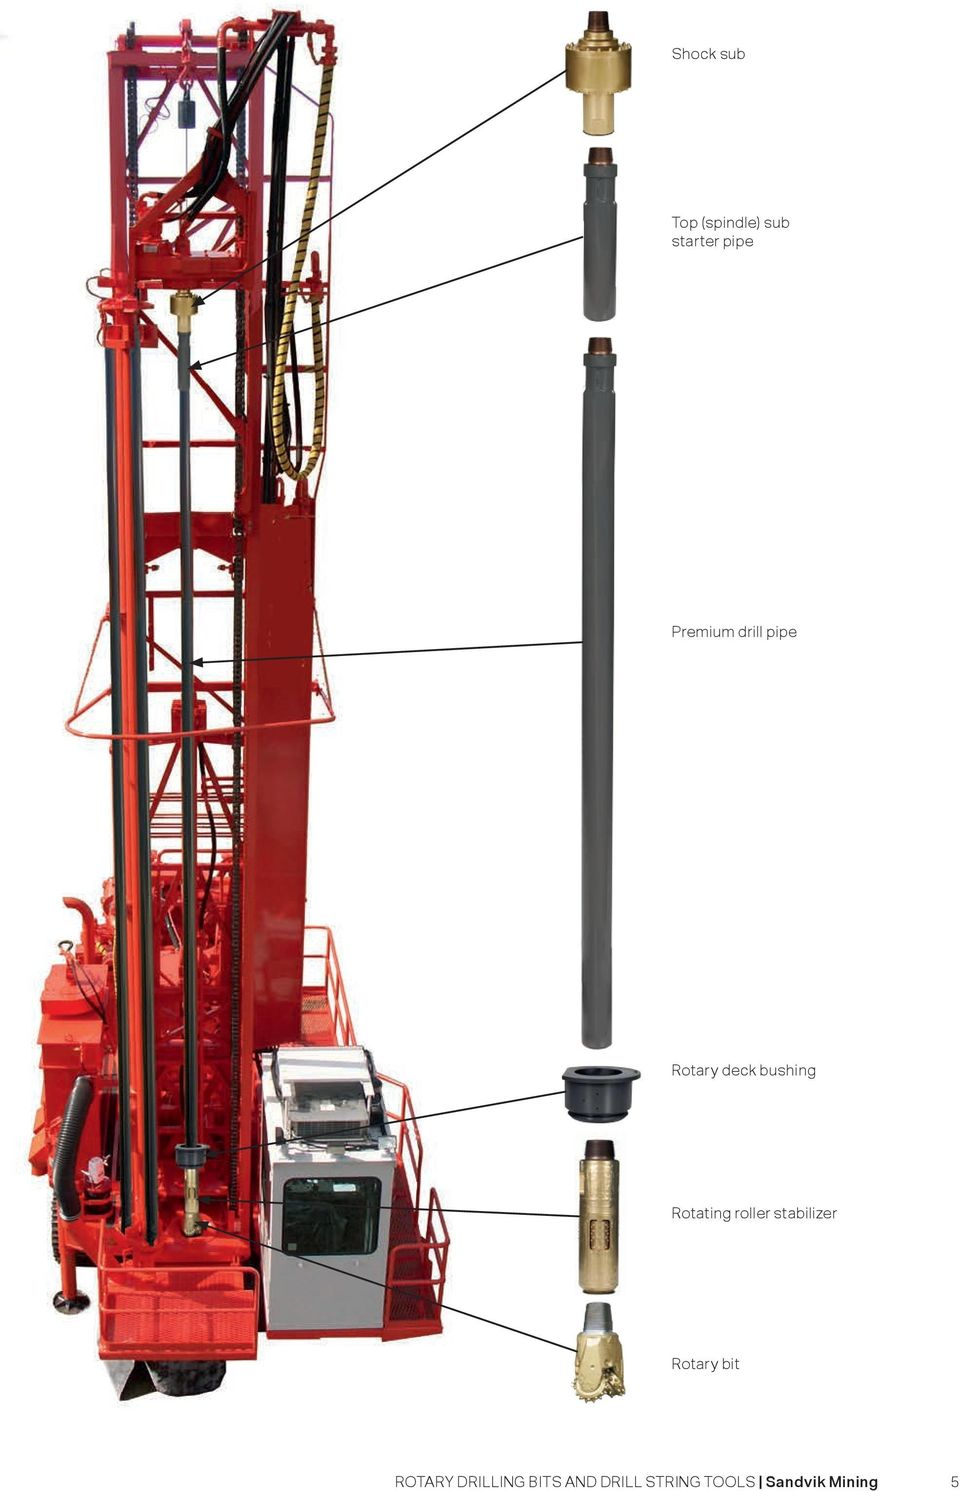 ROTARY DRILLING BITS AND DRILL STRING TOOLS - PDF